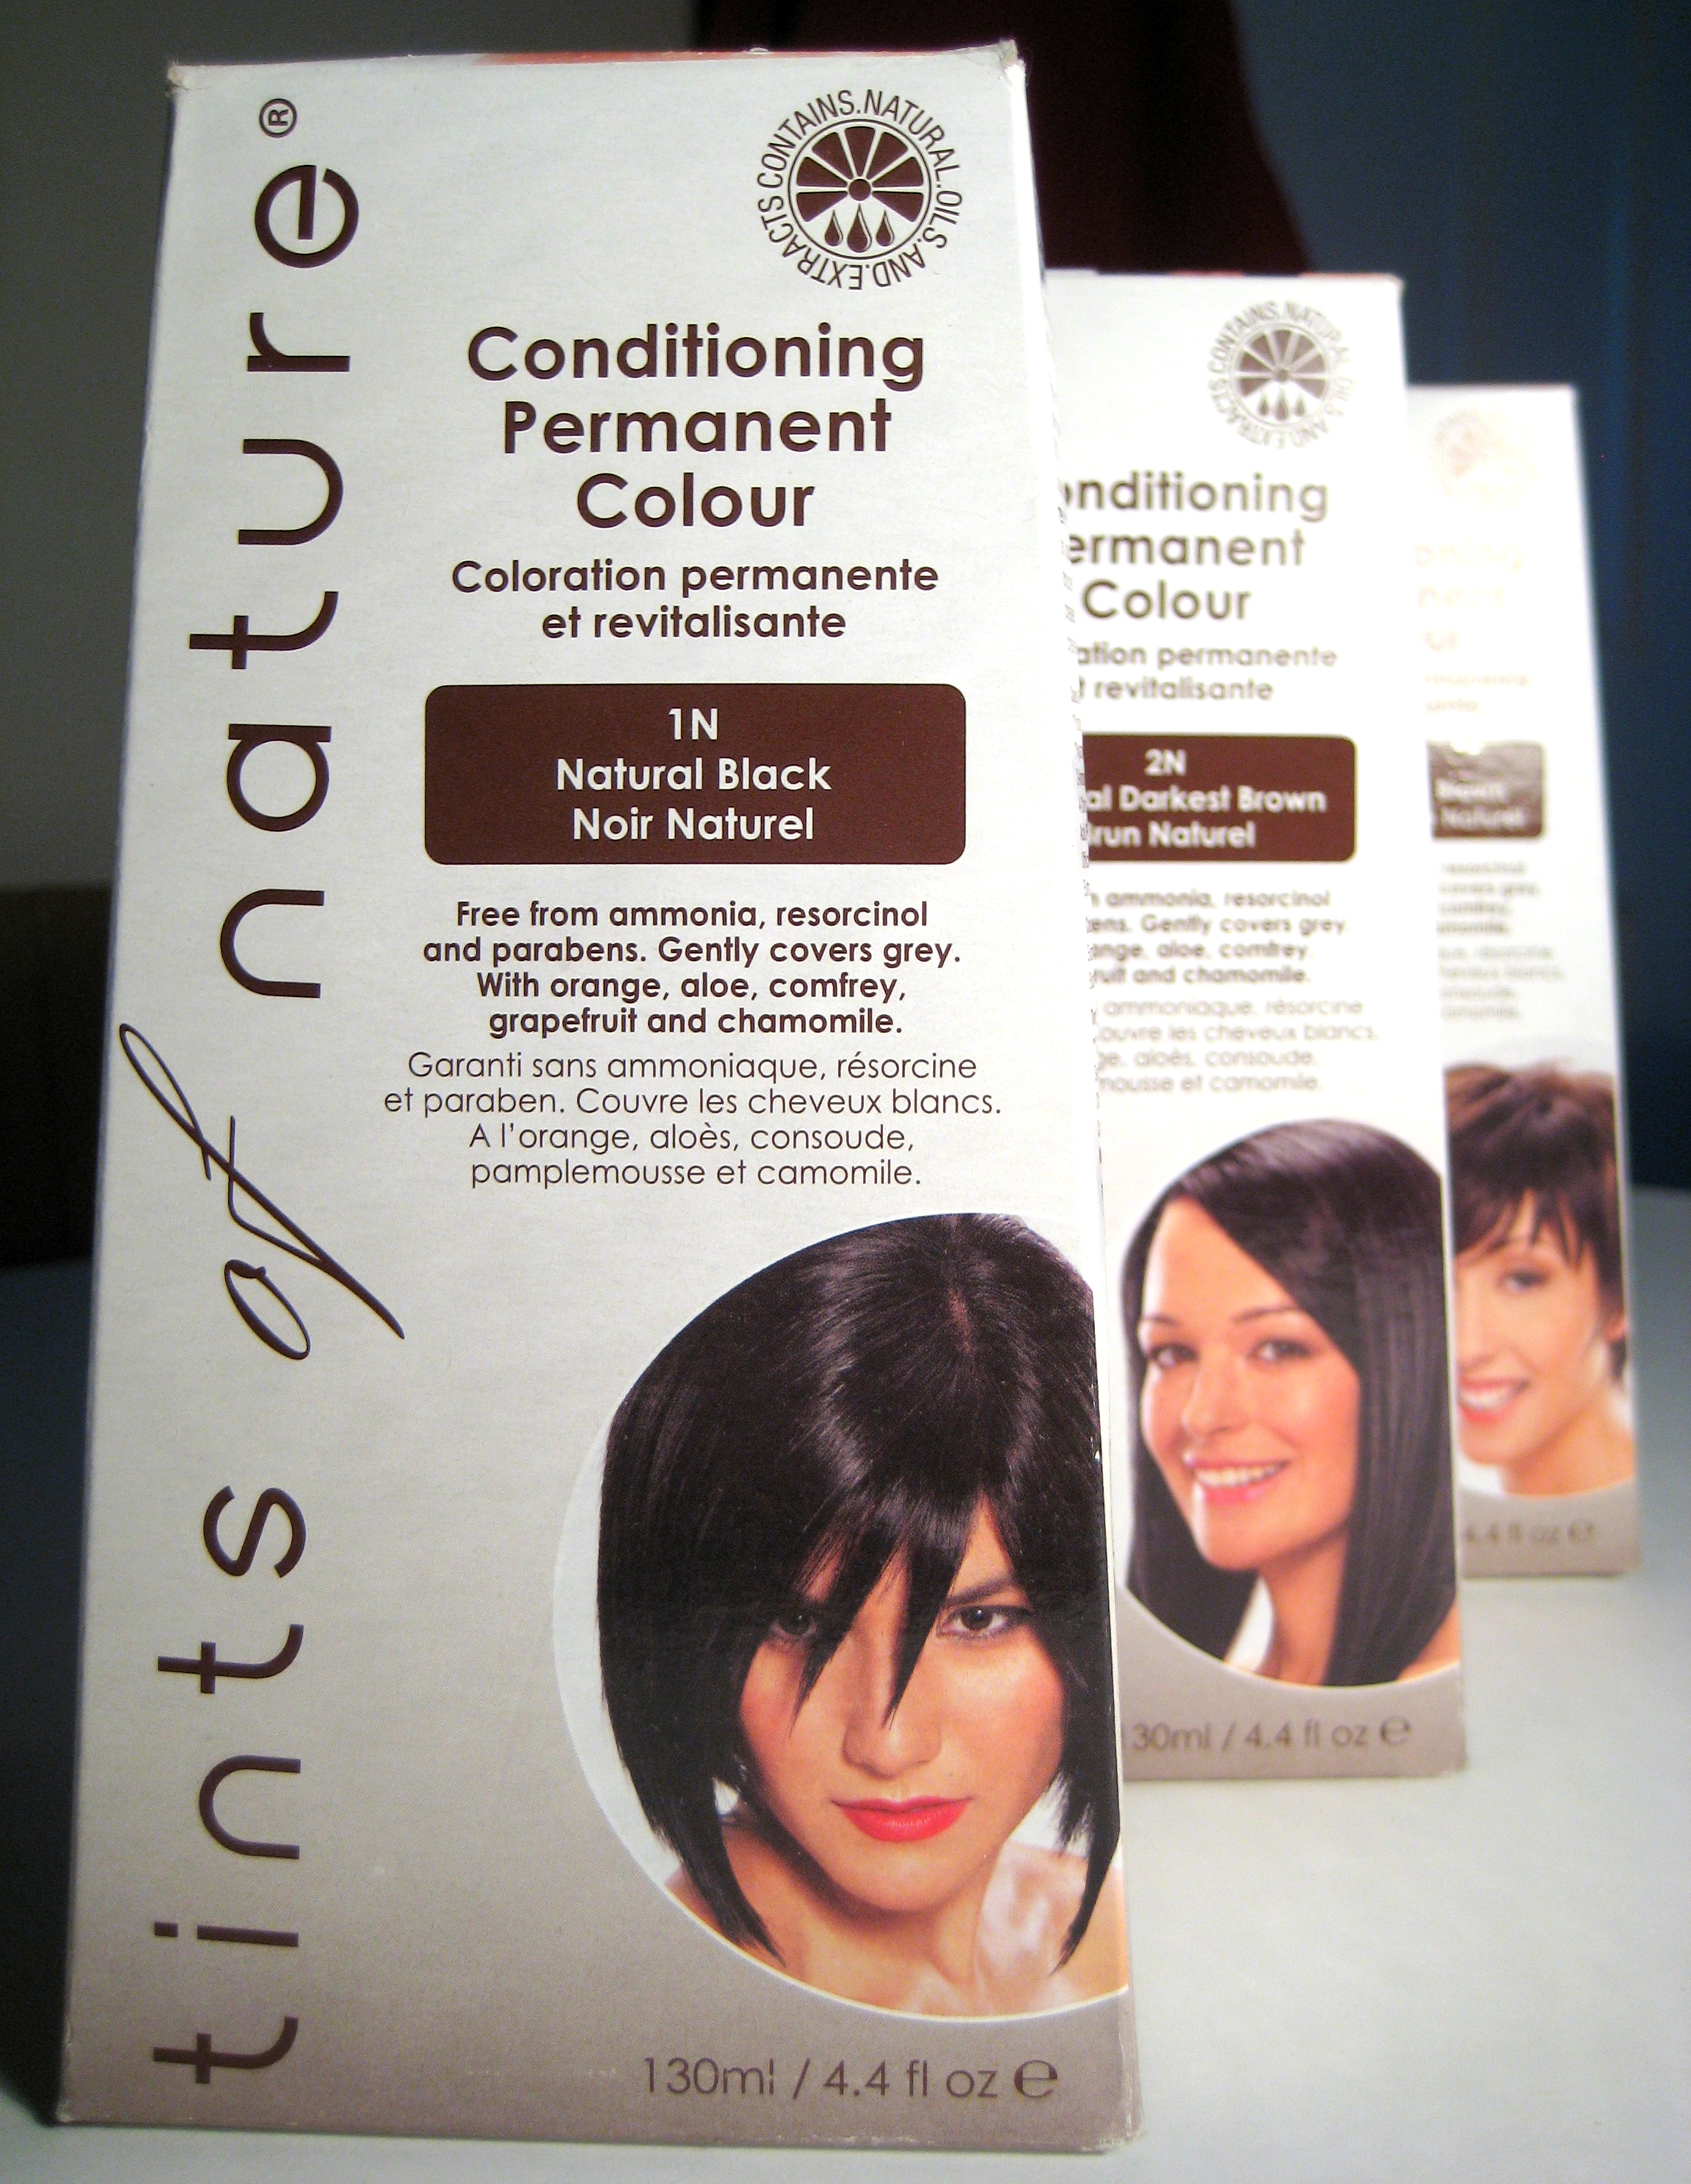 Judicial Review Tints Of Nature Conditioning Permanent Colour